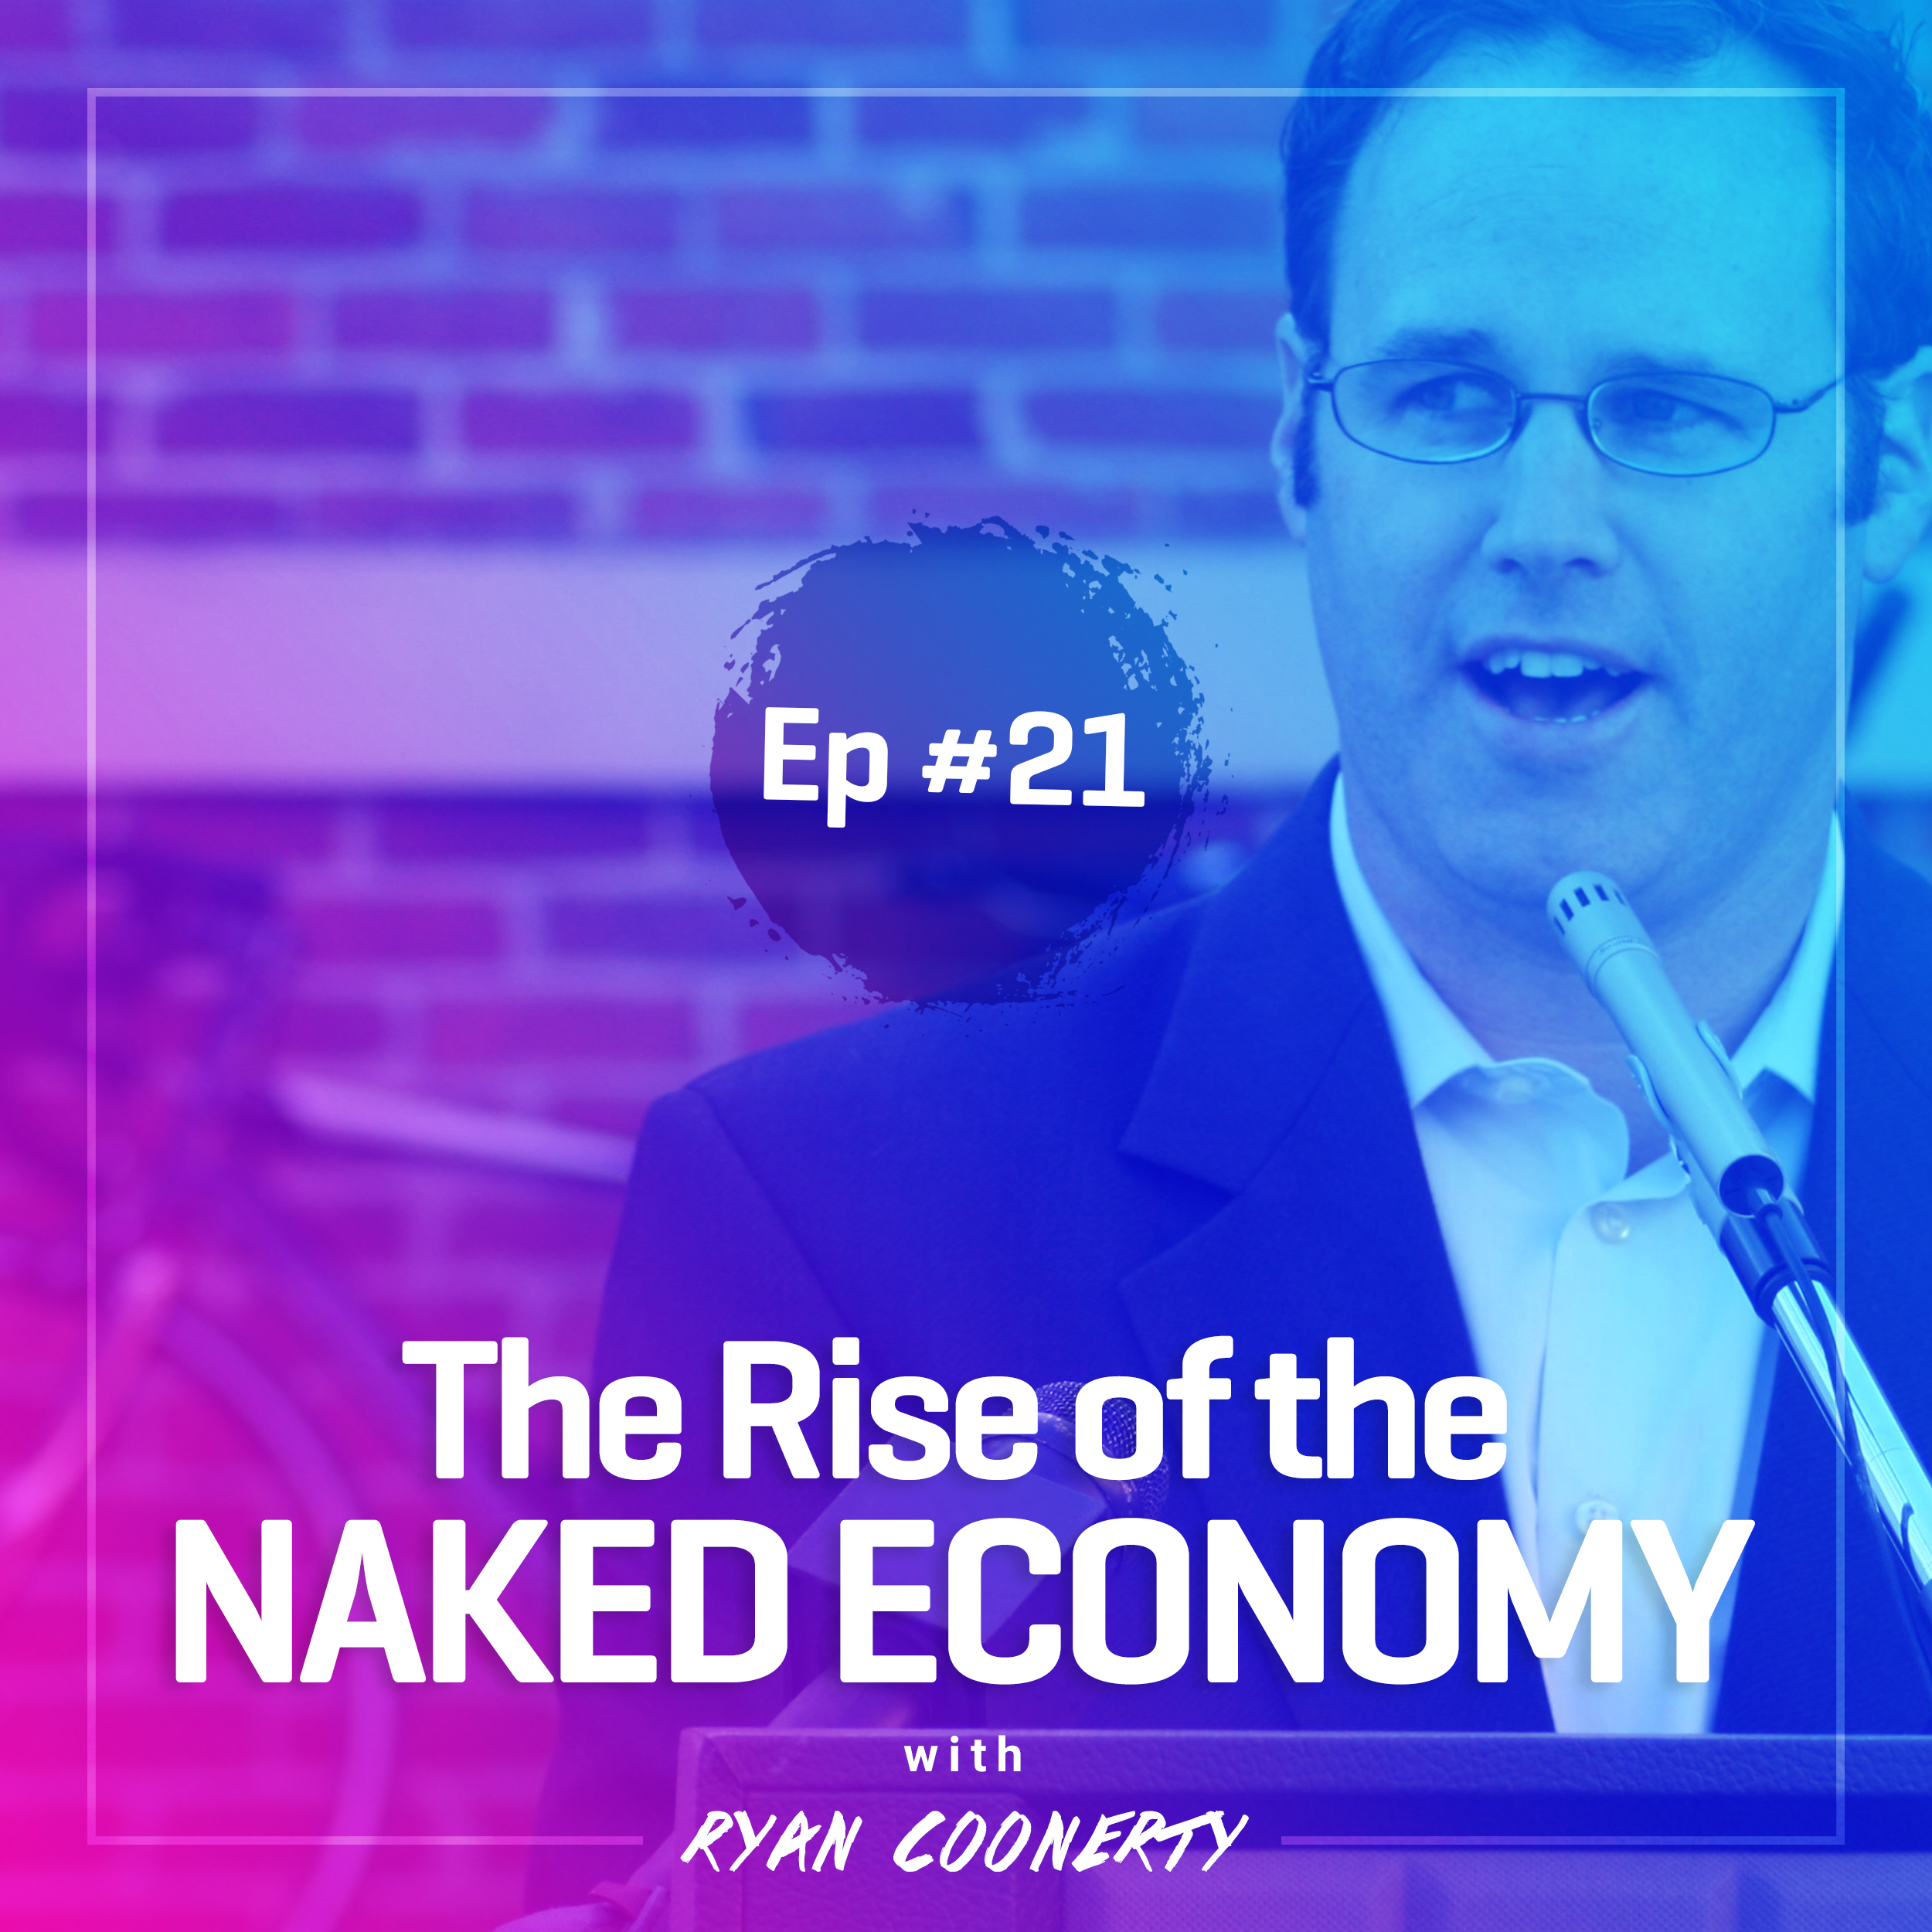 #21: The Rise of the Naked Economy with Ryan Coonerty